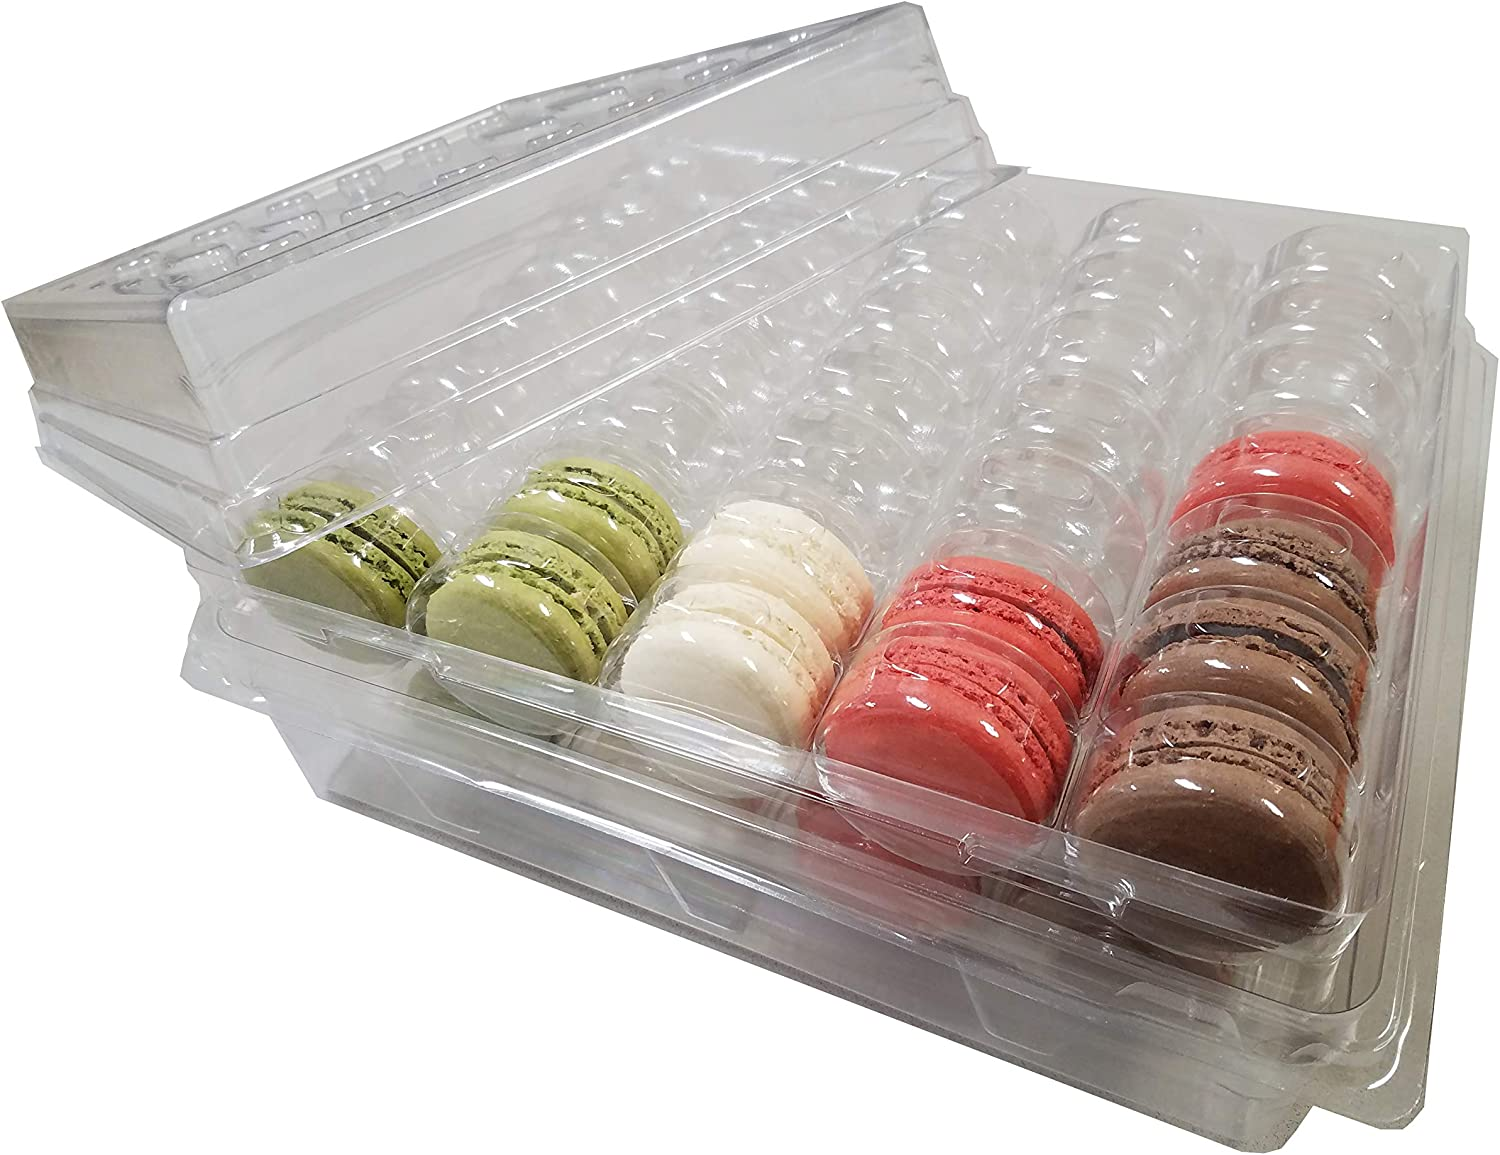 French Macaron Complete Storage Freezer Boxe - Large Storage Box and 4 Macarons Trays - Stores 70 macarons - 2 Sets